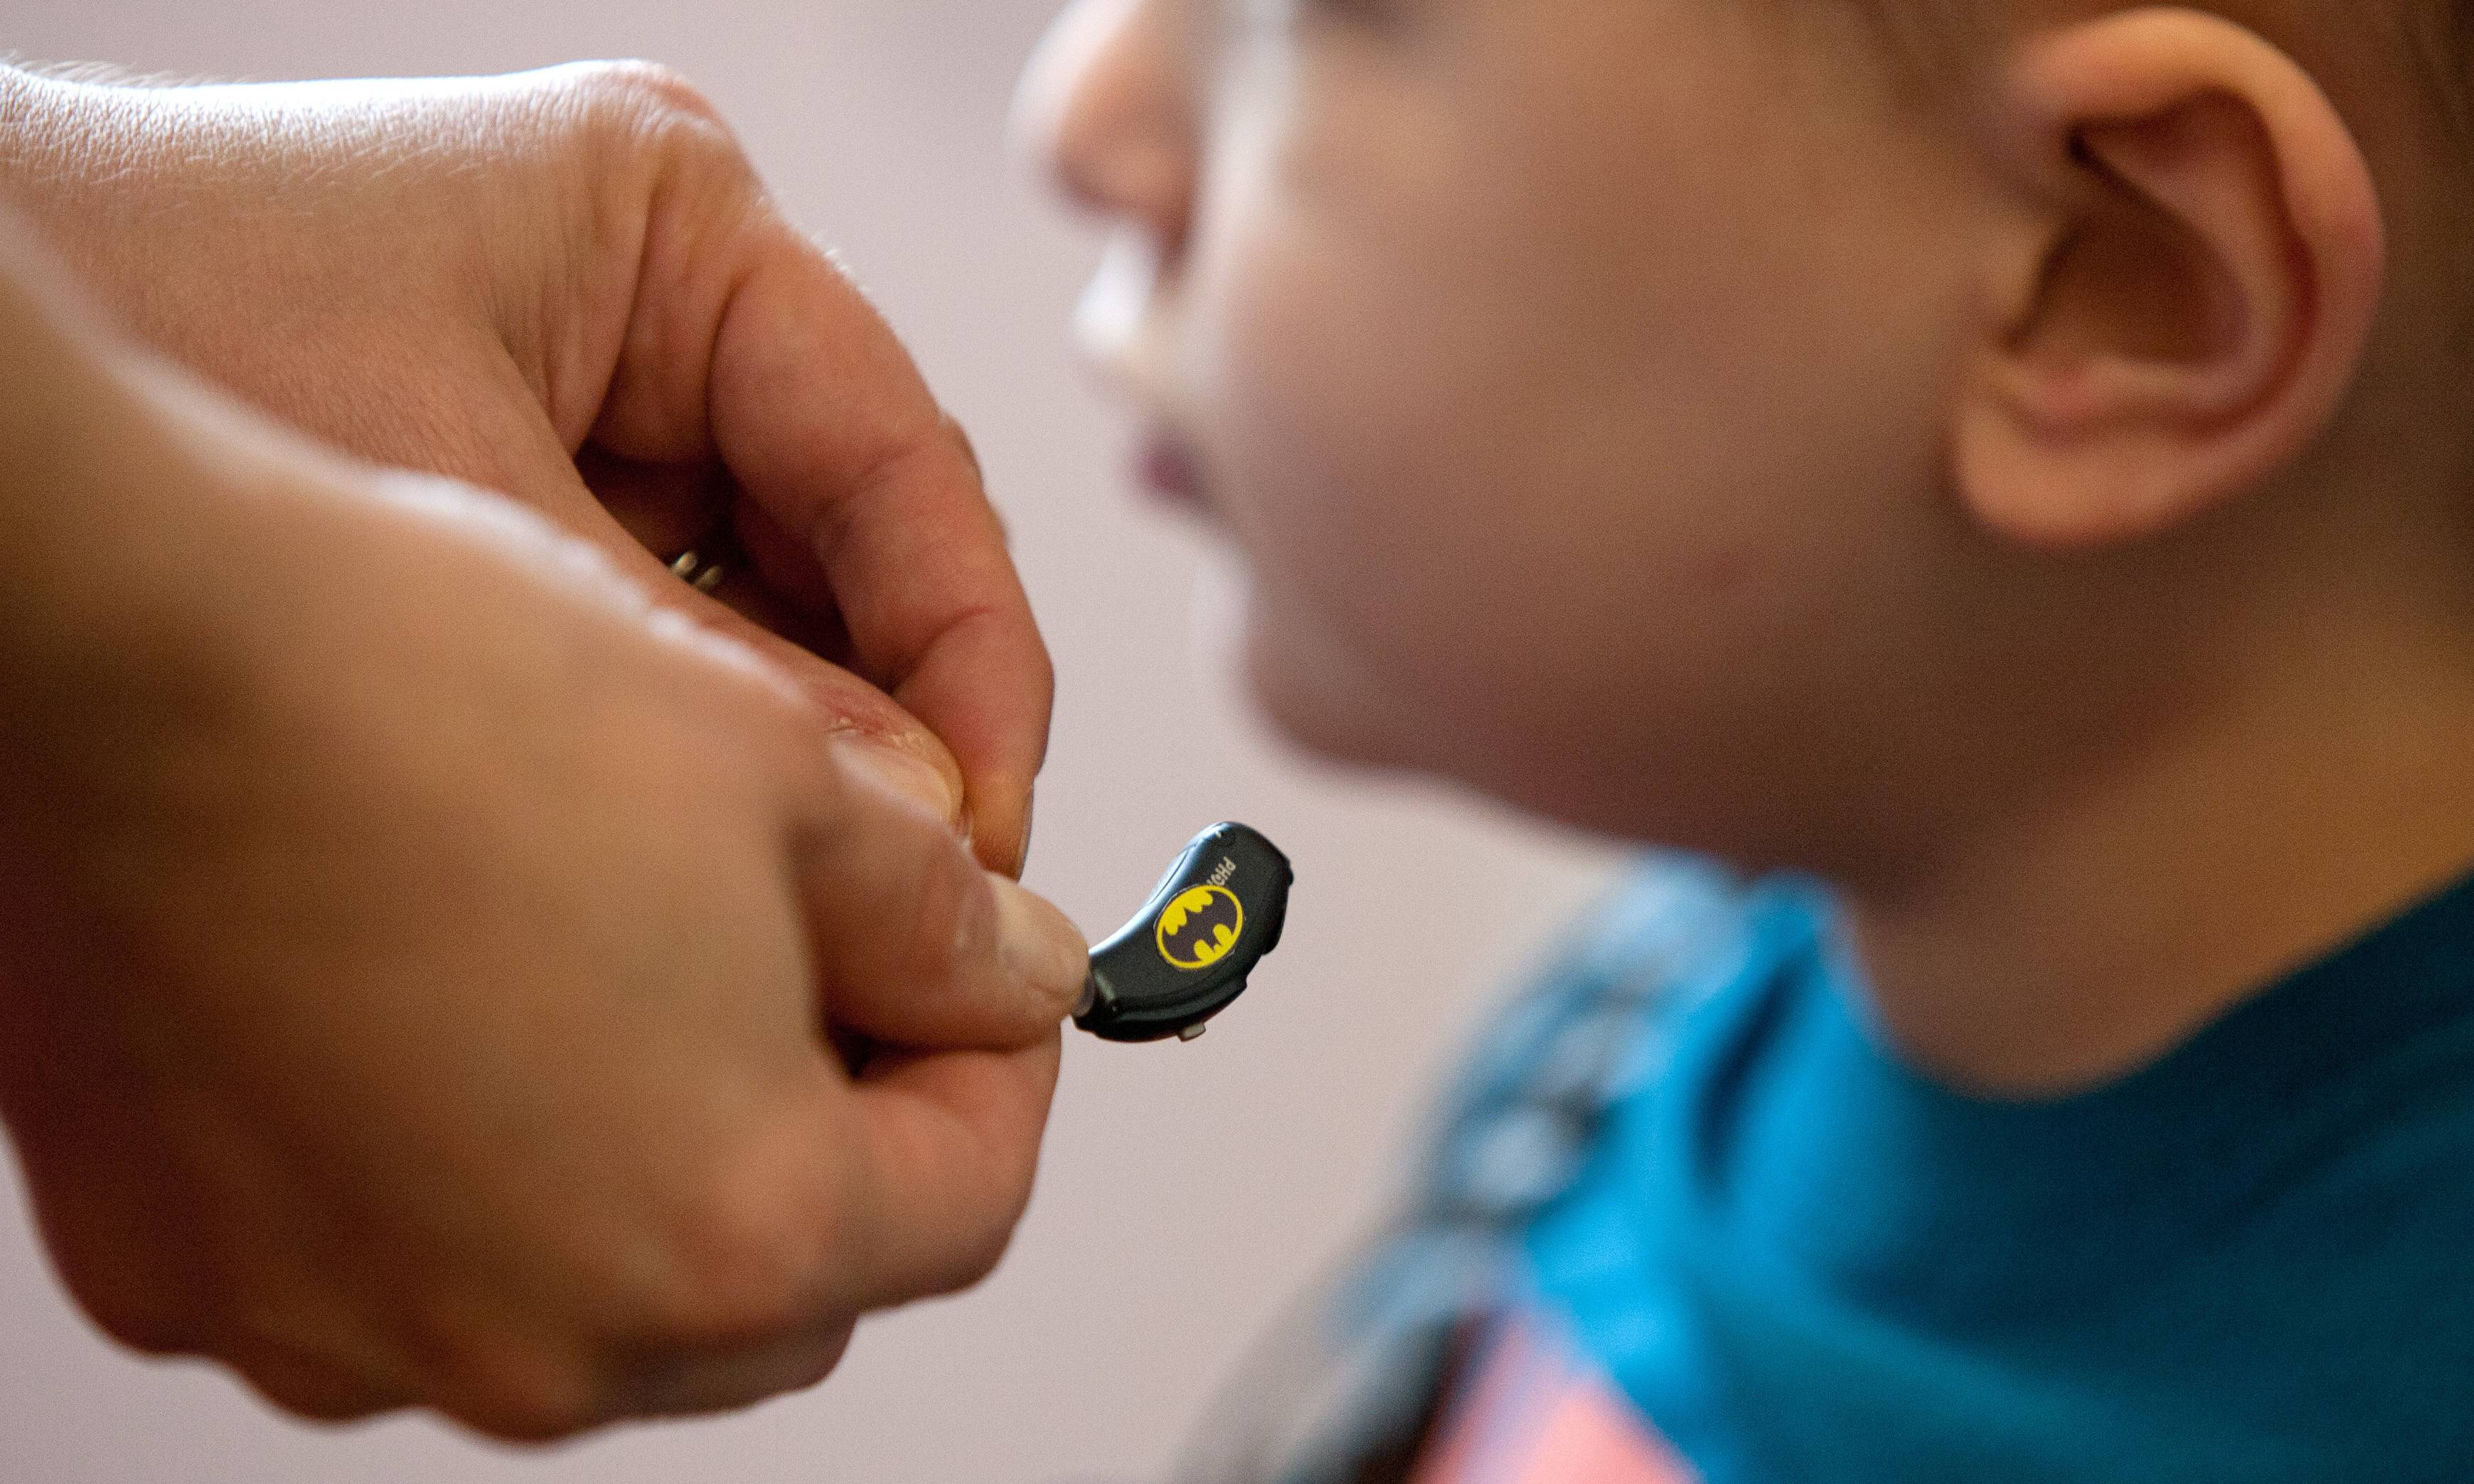 Riley Buckolz, who has several tumors in his brain and spine, receives a hearing aid adorned with the logo of his favorite superhero, Batman, at the Hearing Health Center in Naperville.